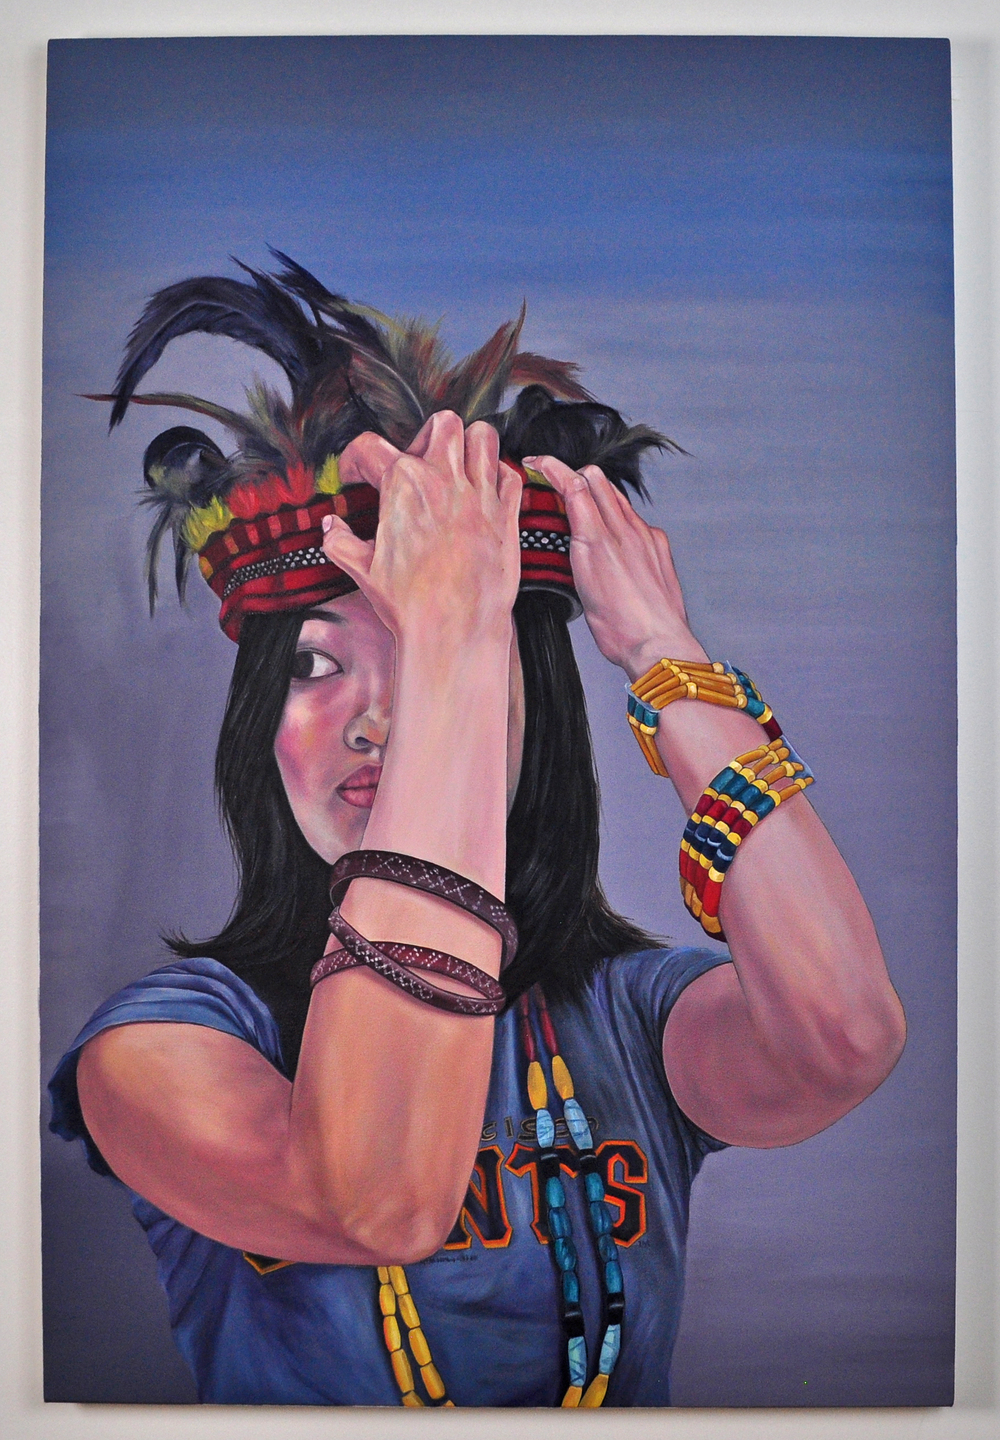 "Self Fitting , 2010. Oil on canvas over panel, 48"" x 32"" (Photo: Ramon Pintado)"